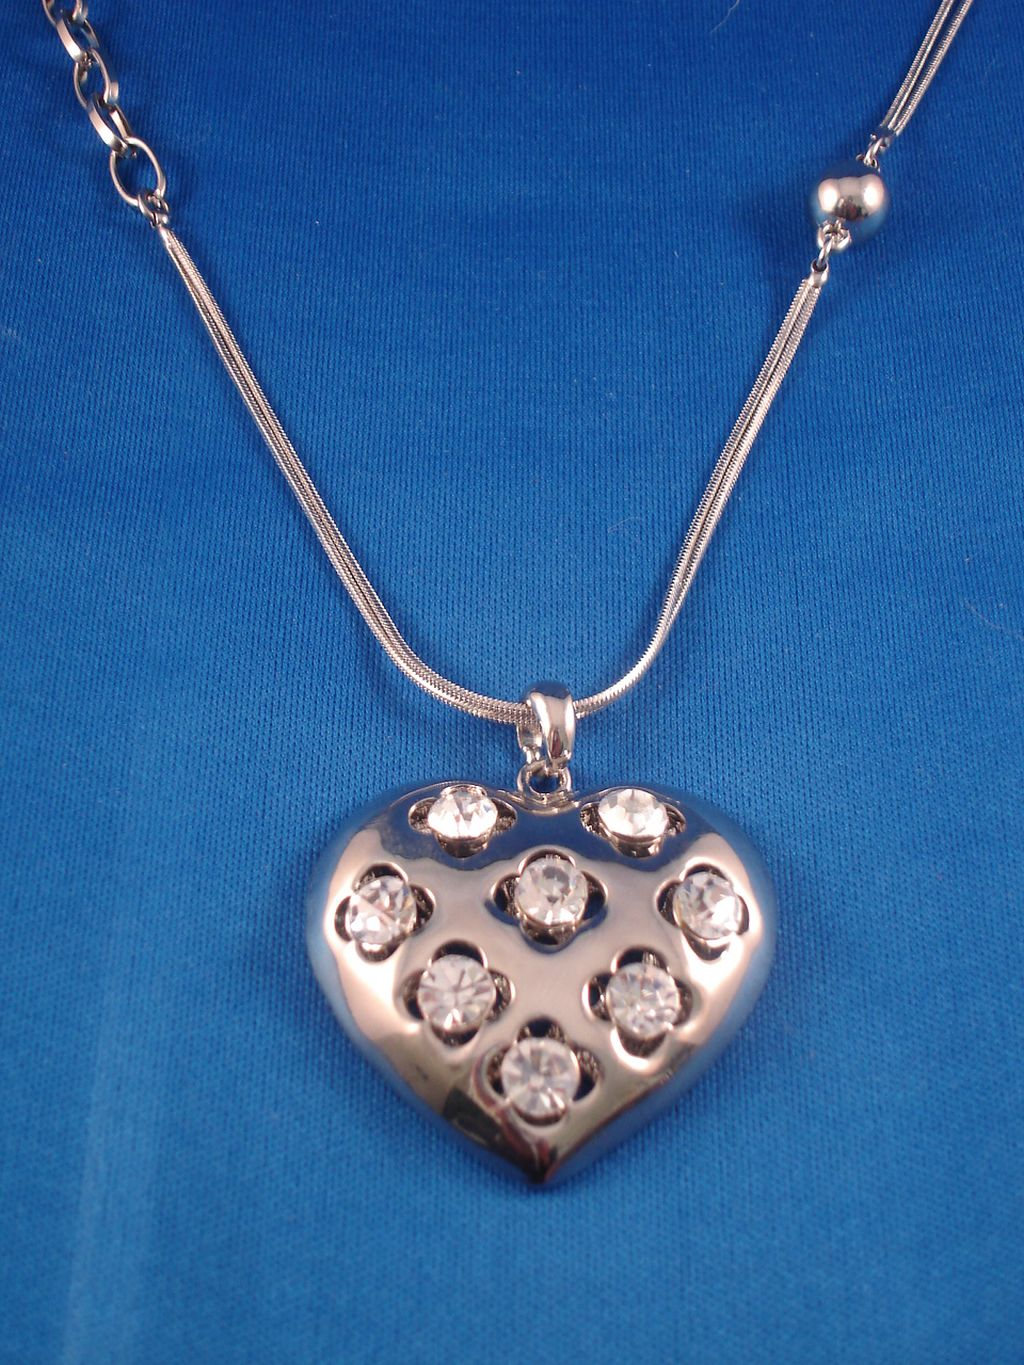 "1 3/4"" Heart Pendant with CZ Stones, 28"" Chain Necklace, Anti-allergic Jewelry"